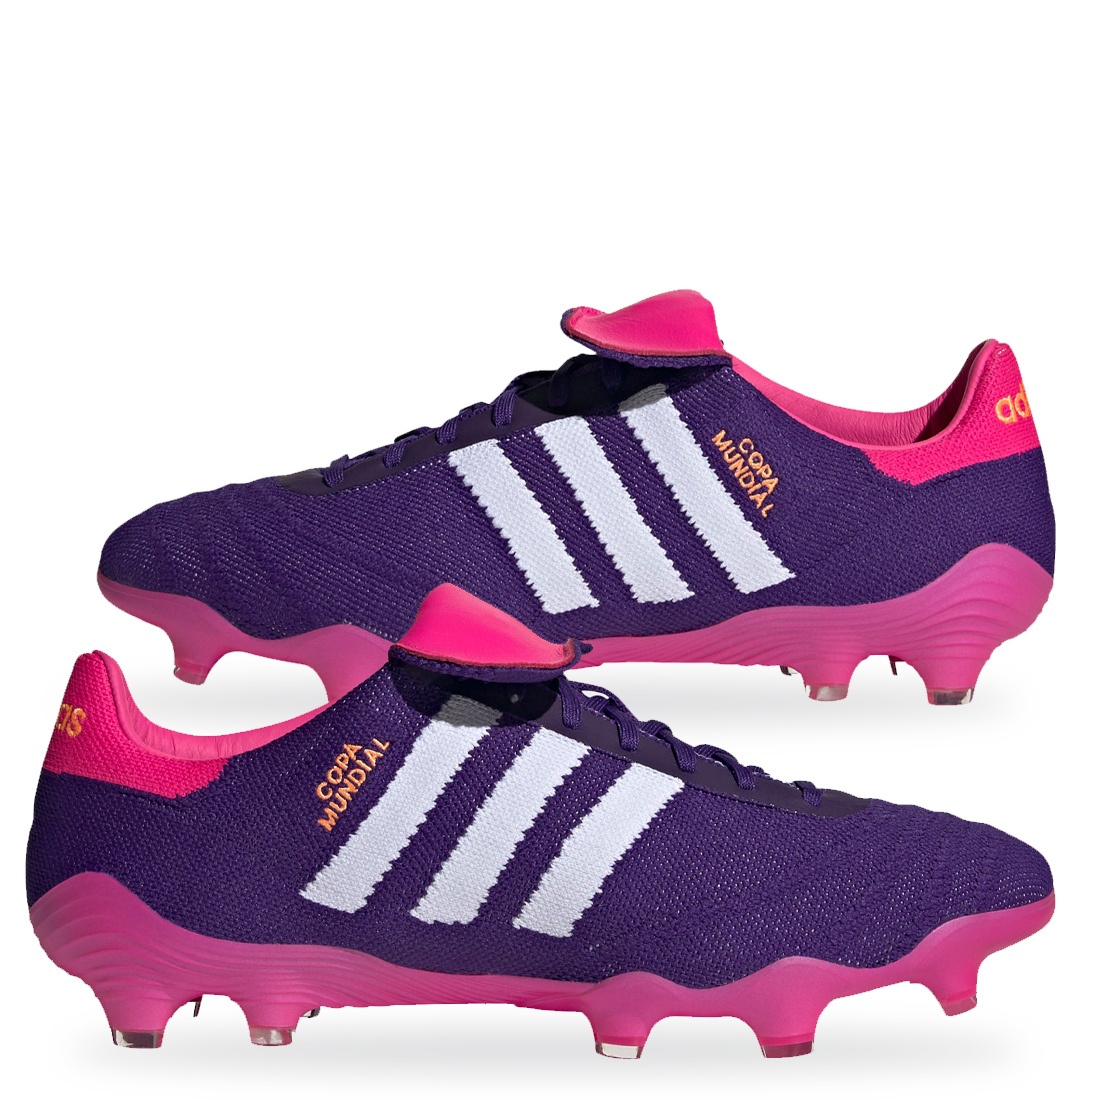 adidas® Copa: Iconic Looks and High-Tech Design